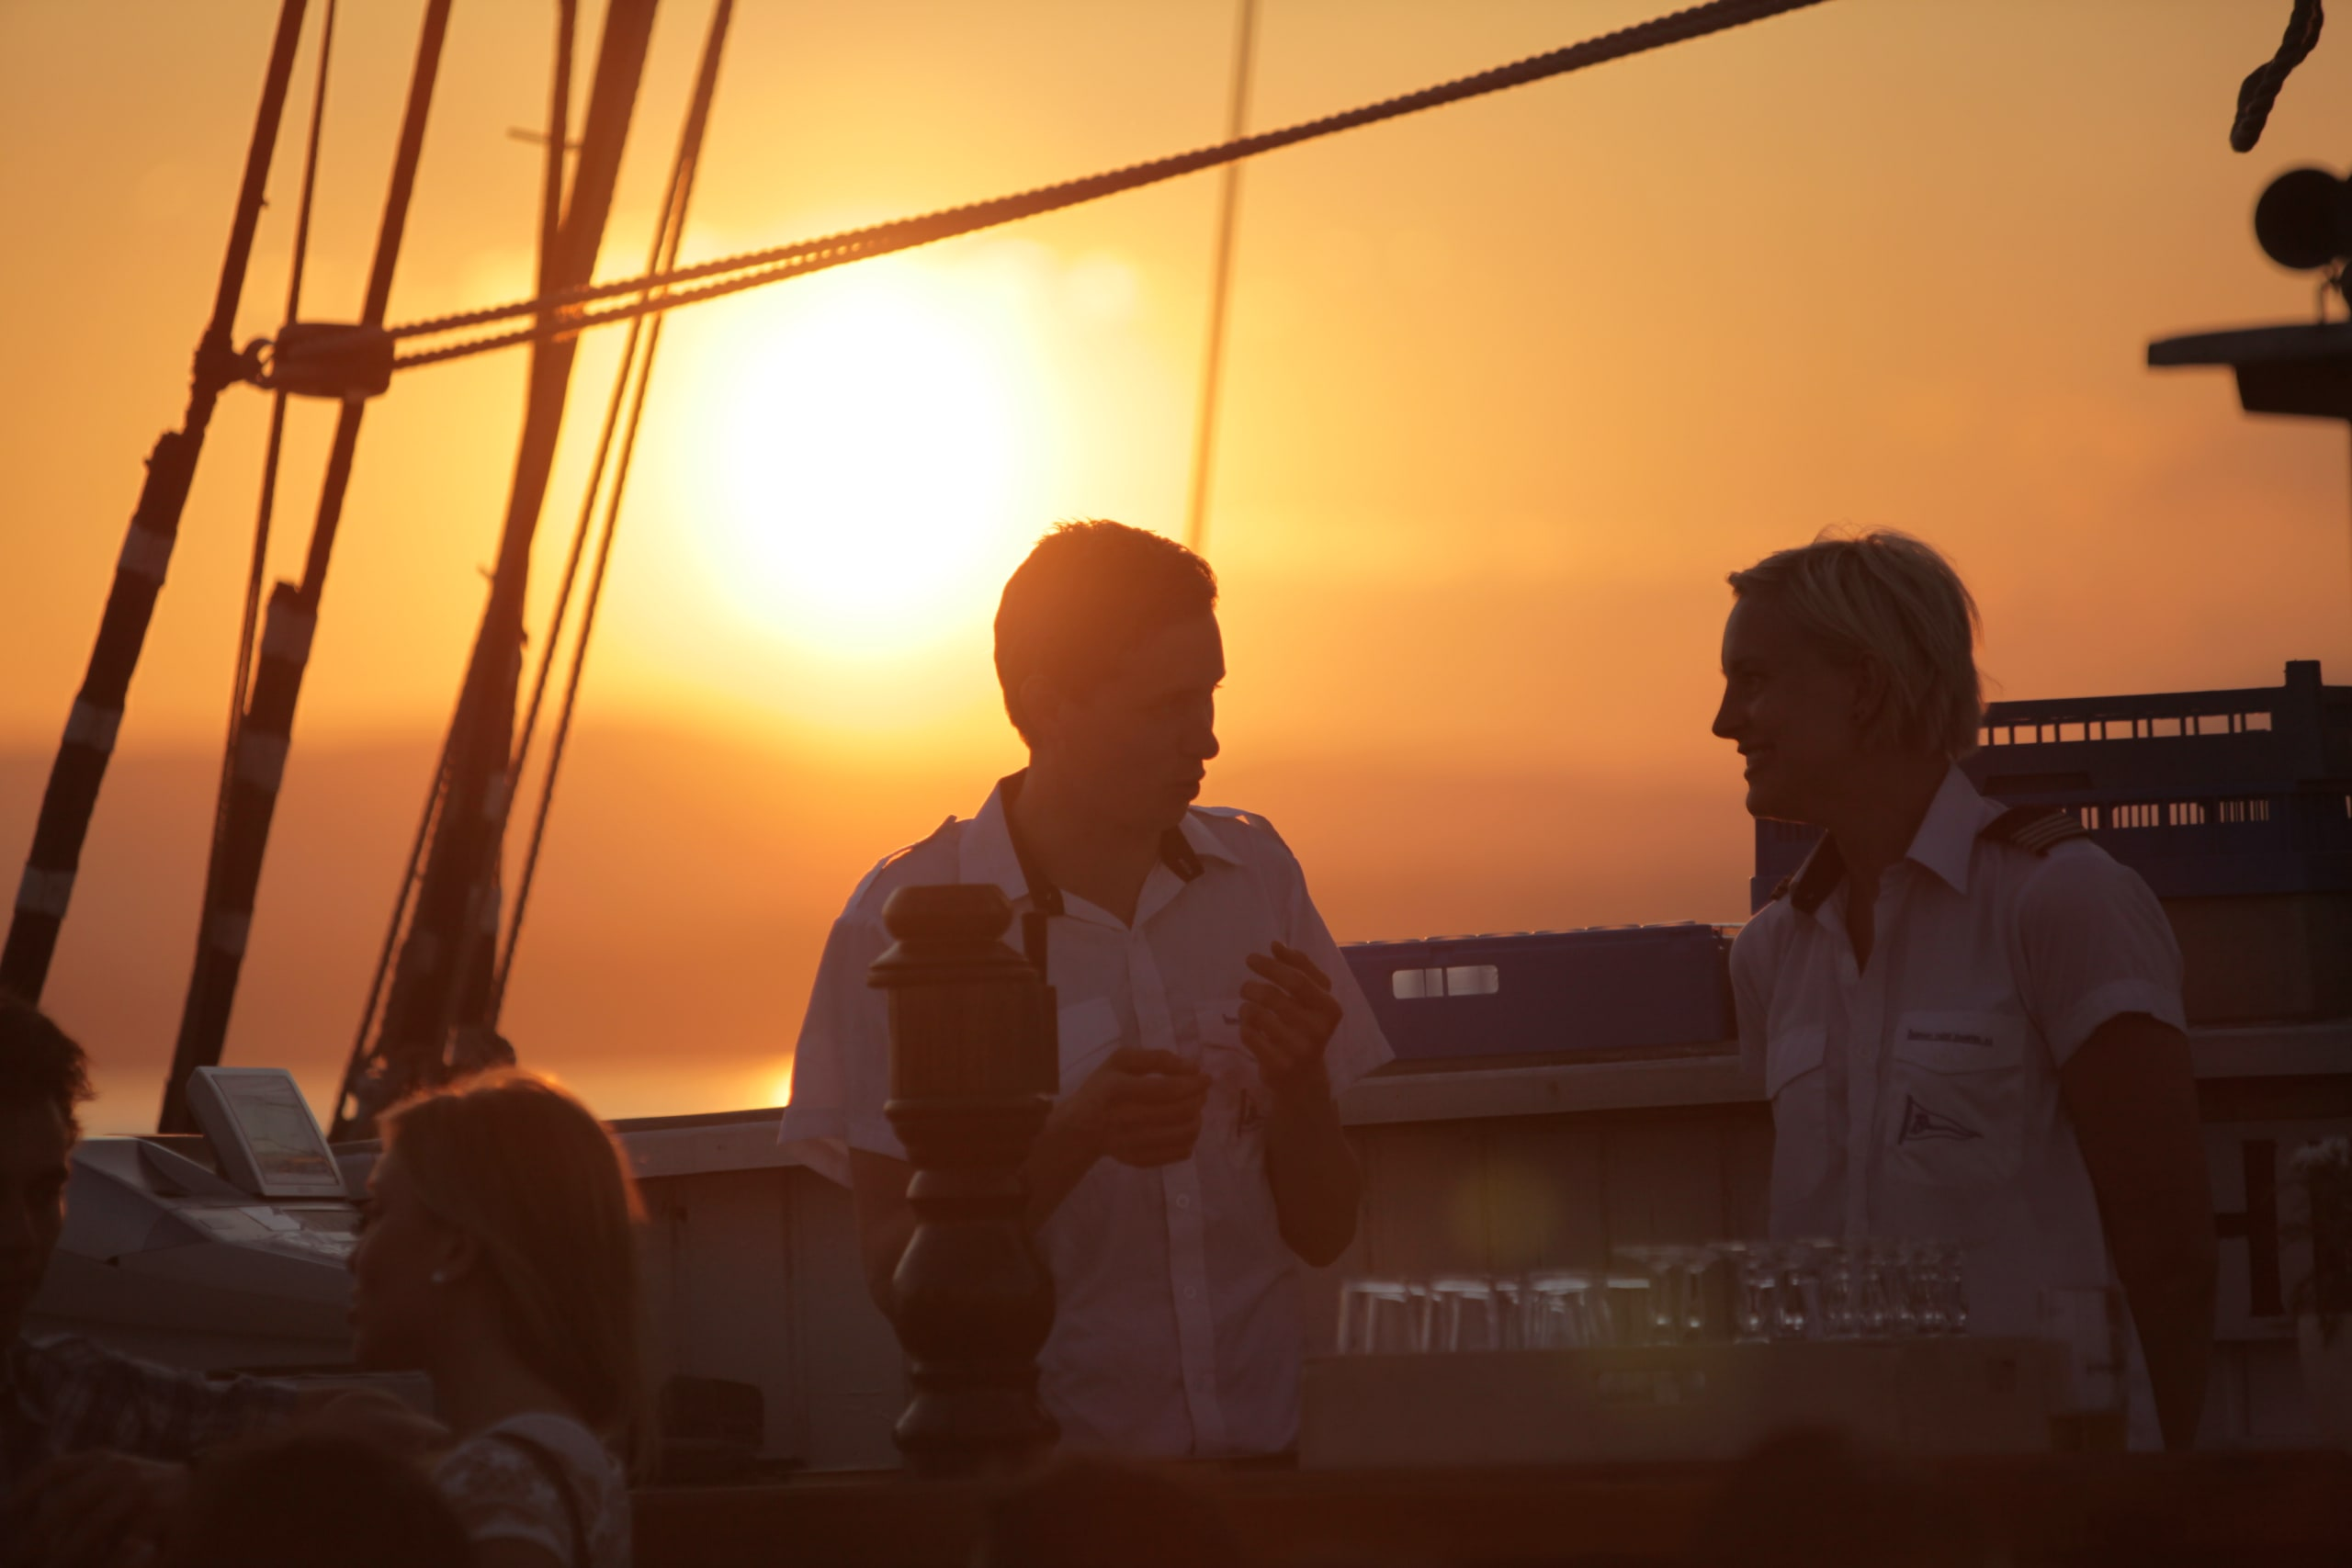 Crew on the sailship in sunset